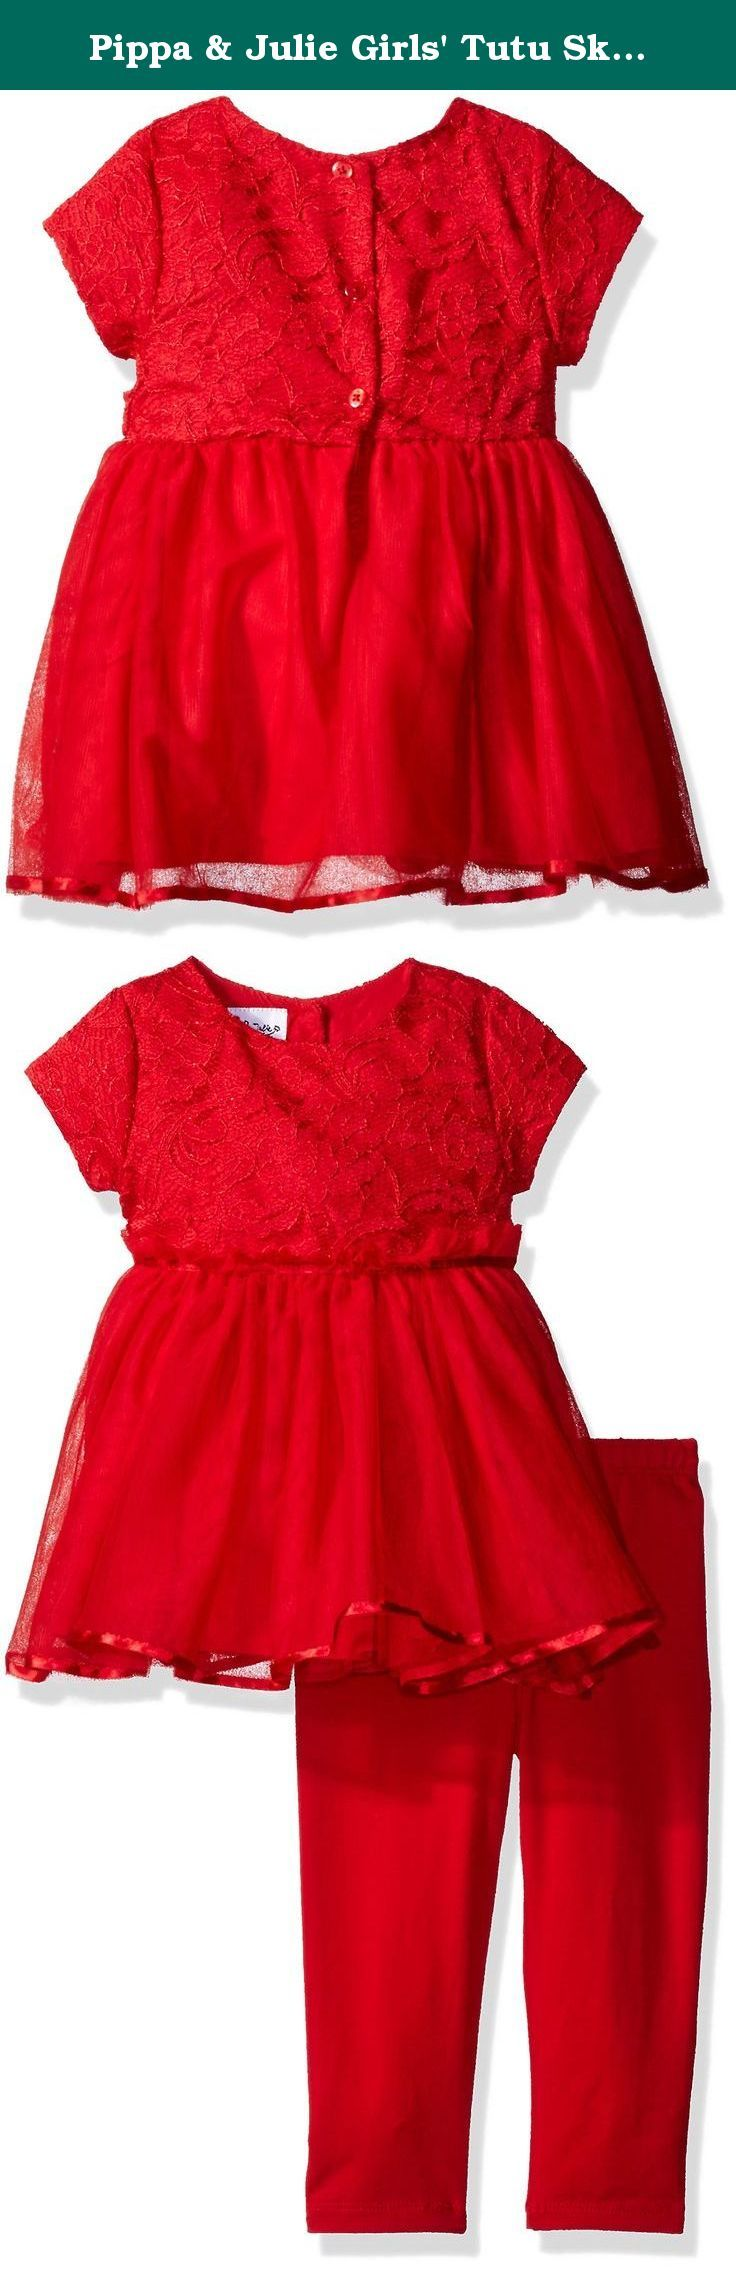 Pippa & Julie Girls' Tutu Skirt Play Set, Red, 6/9M. This adorable play set has a tunic top with a layered mesh tutu skirt and soft coordinating leggings.